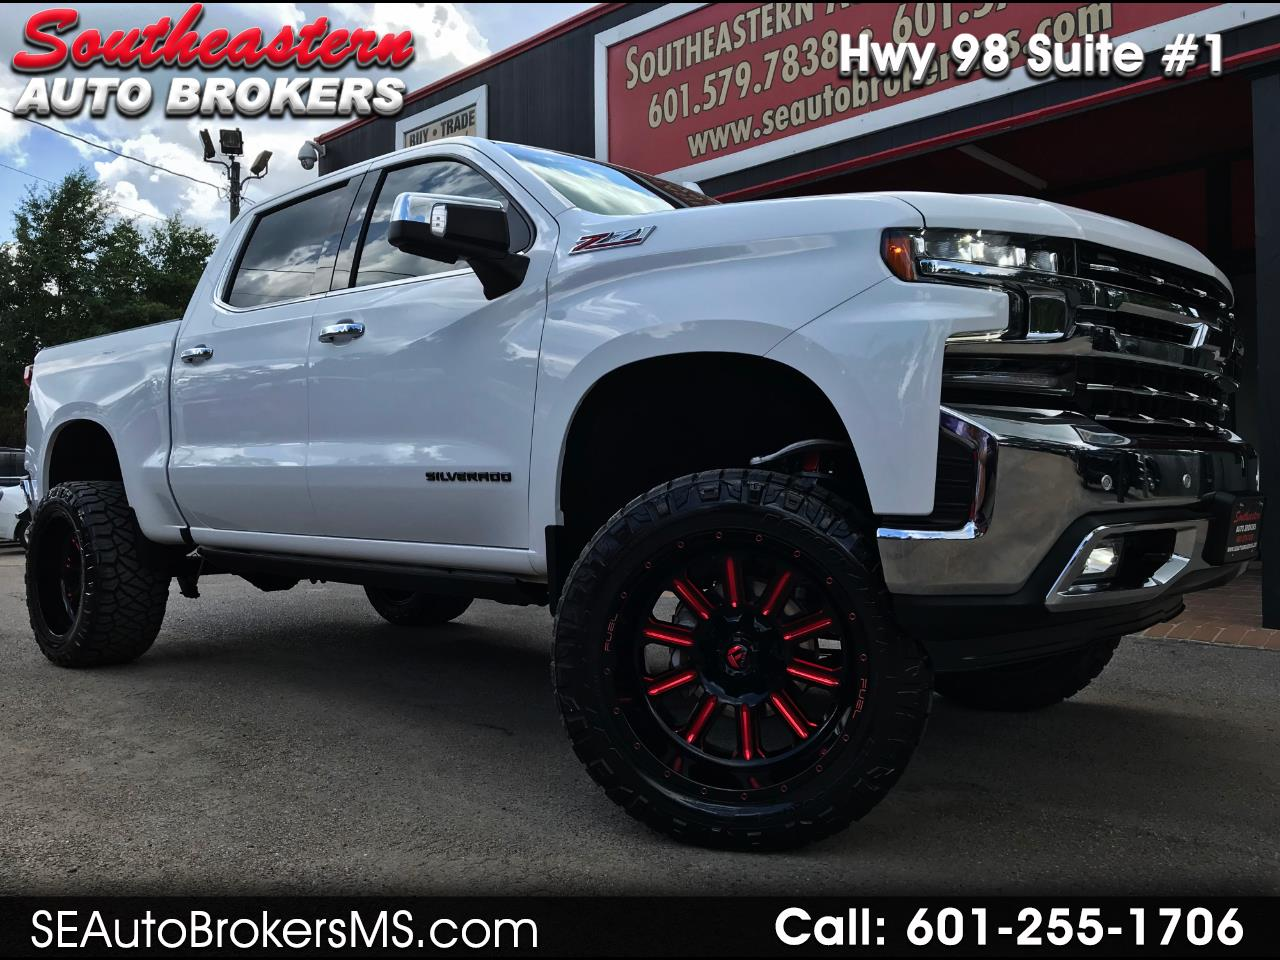 2019 Chevrolet Silverado 1500 LTZ CREW CAB SHORT BED 4WD CUSTOM LIFTED